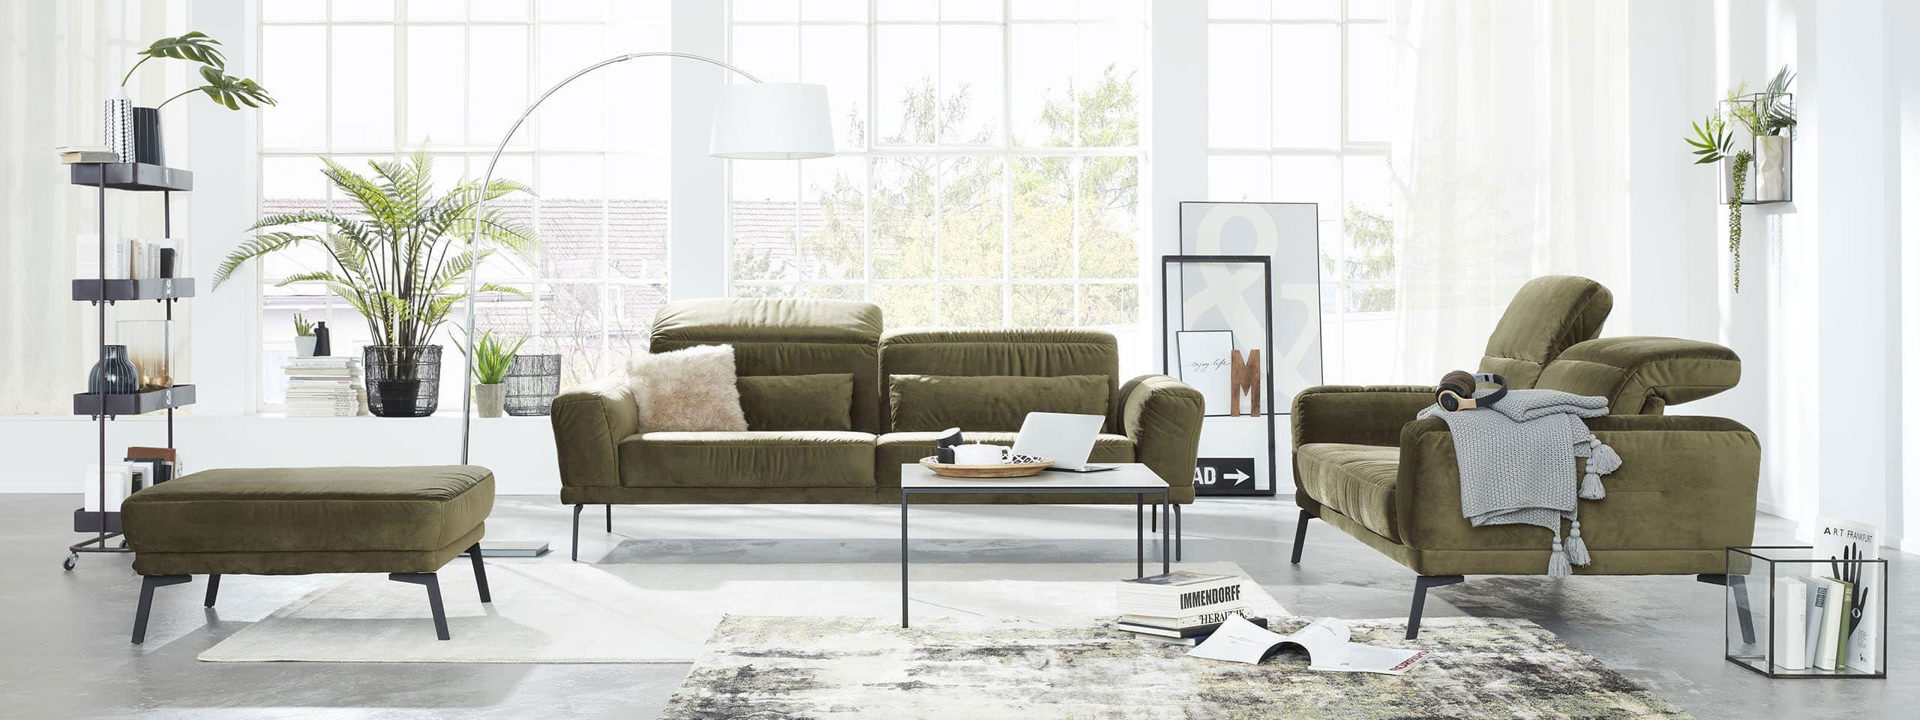 Weser Wohnwelt Interliving Sofa Serie 4103 Paderborn Detmold HF highlight